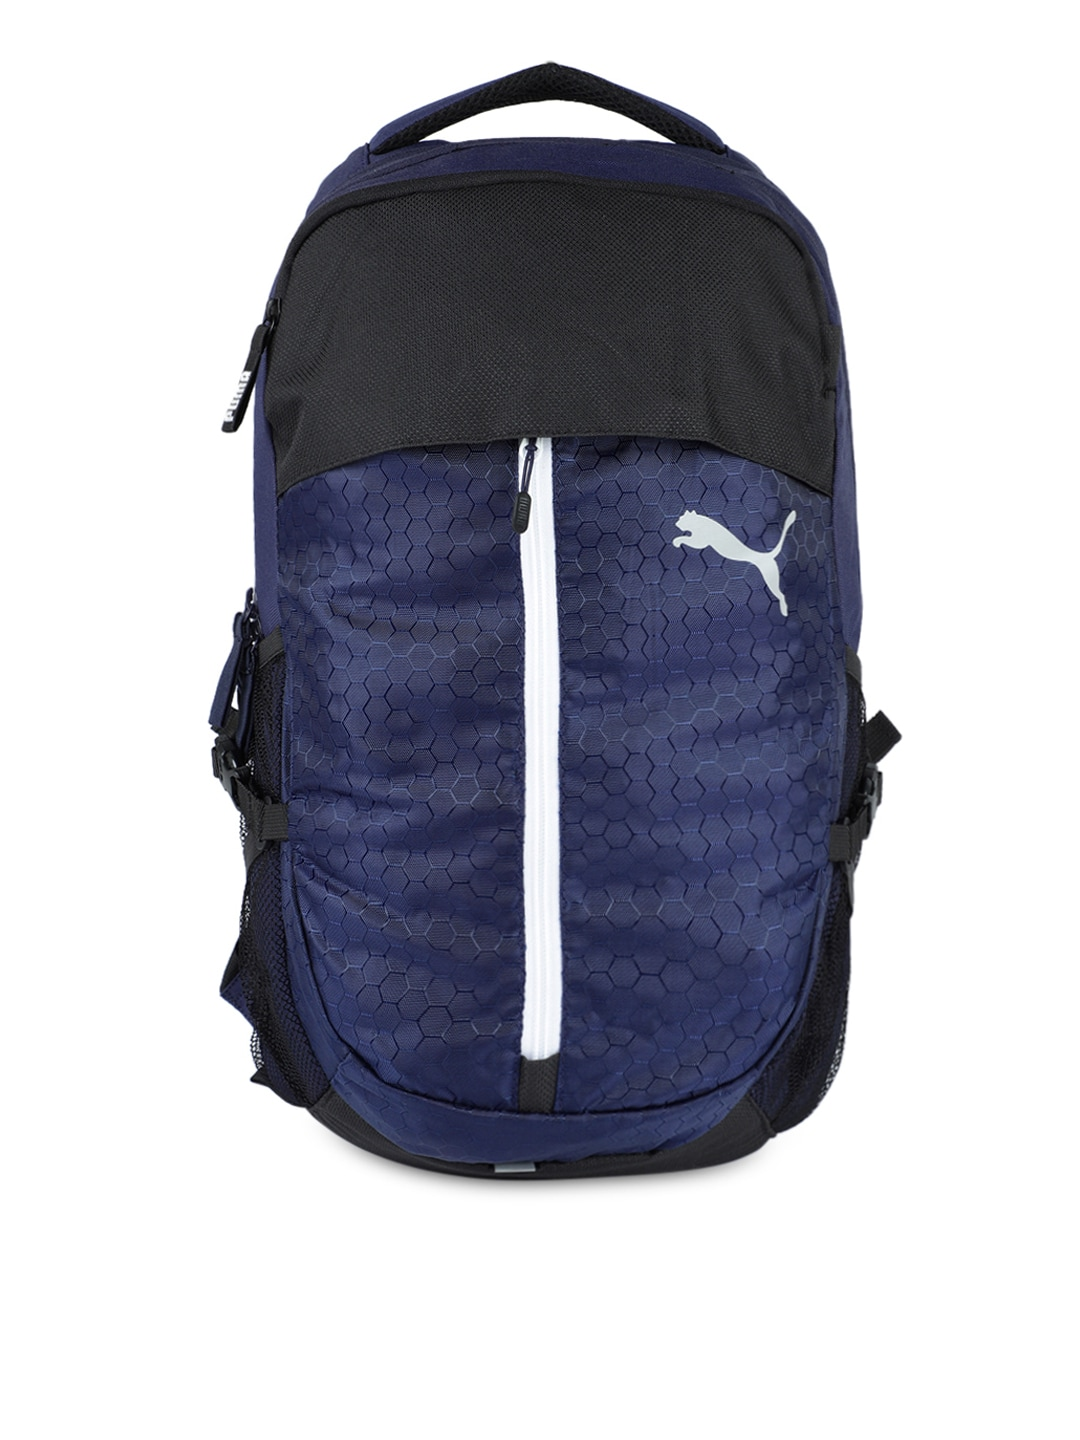 Women Puma Accessories Bags Backpacks - Buy Women Puma Accessories Bags  Backpacks online in India 551c4c6236fa6